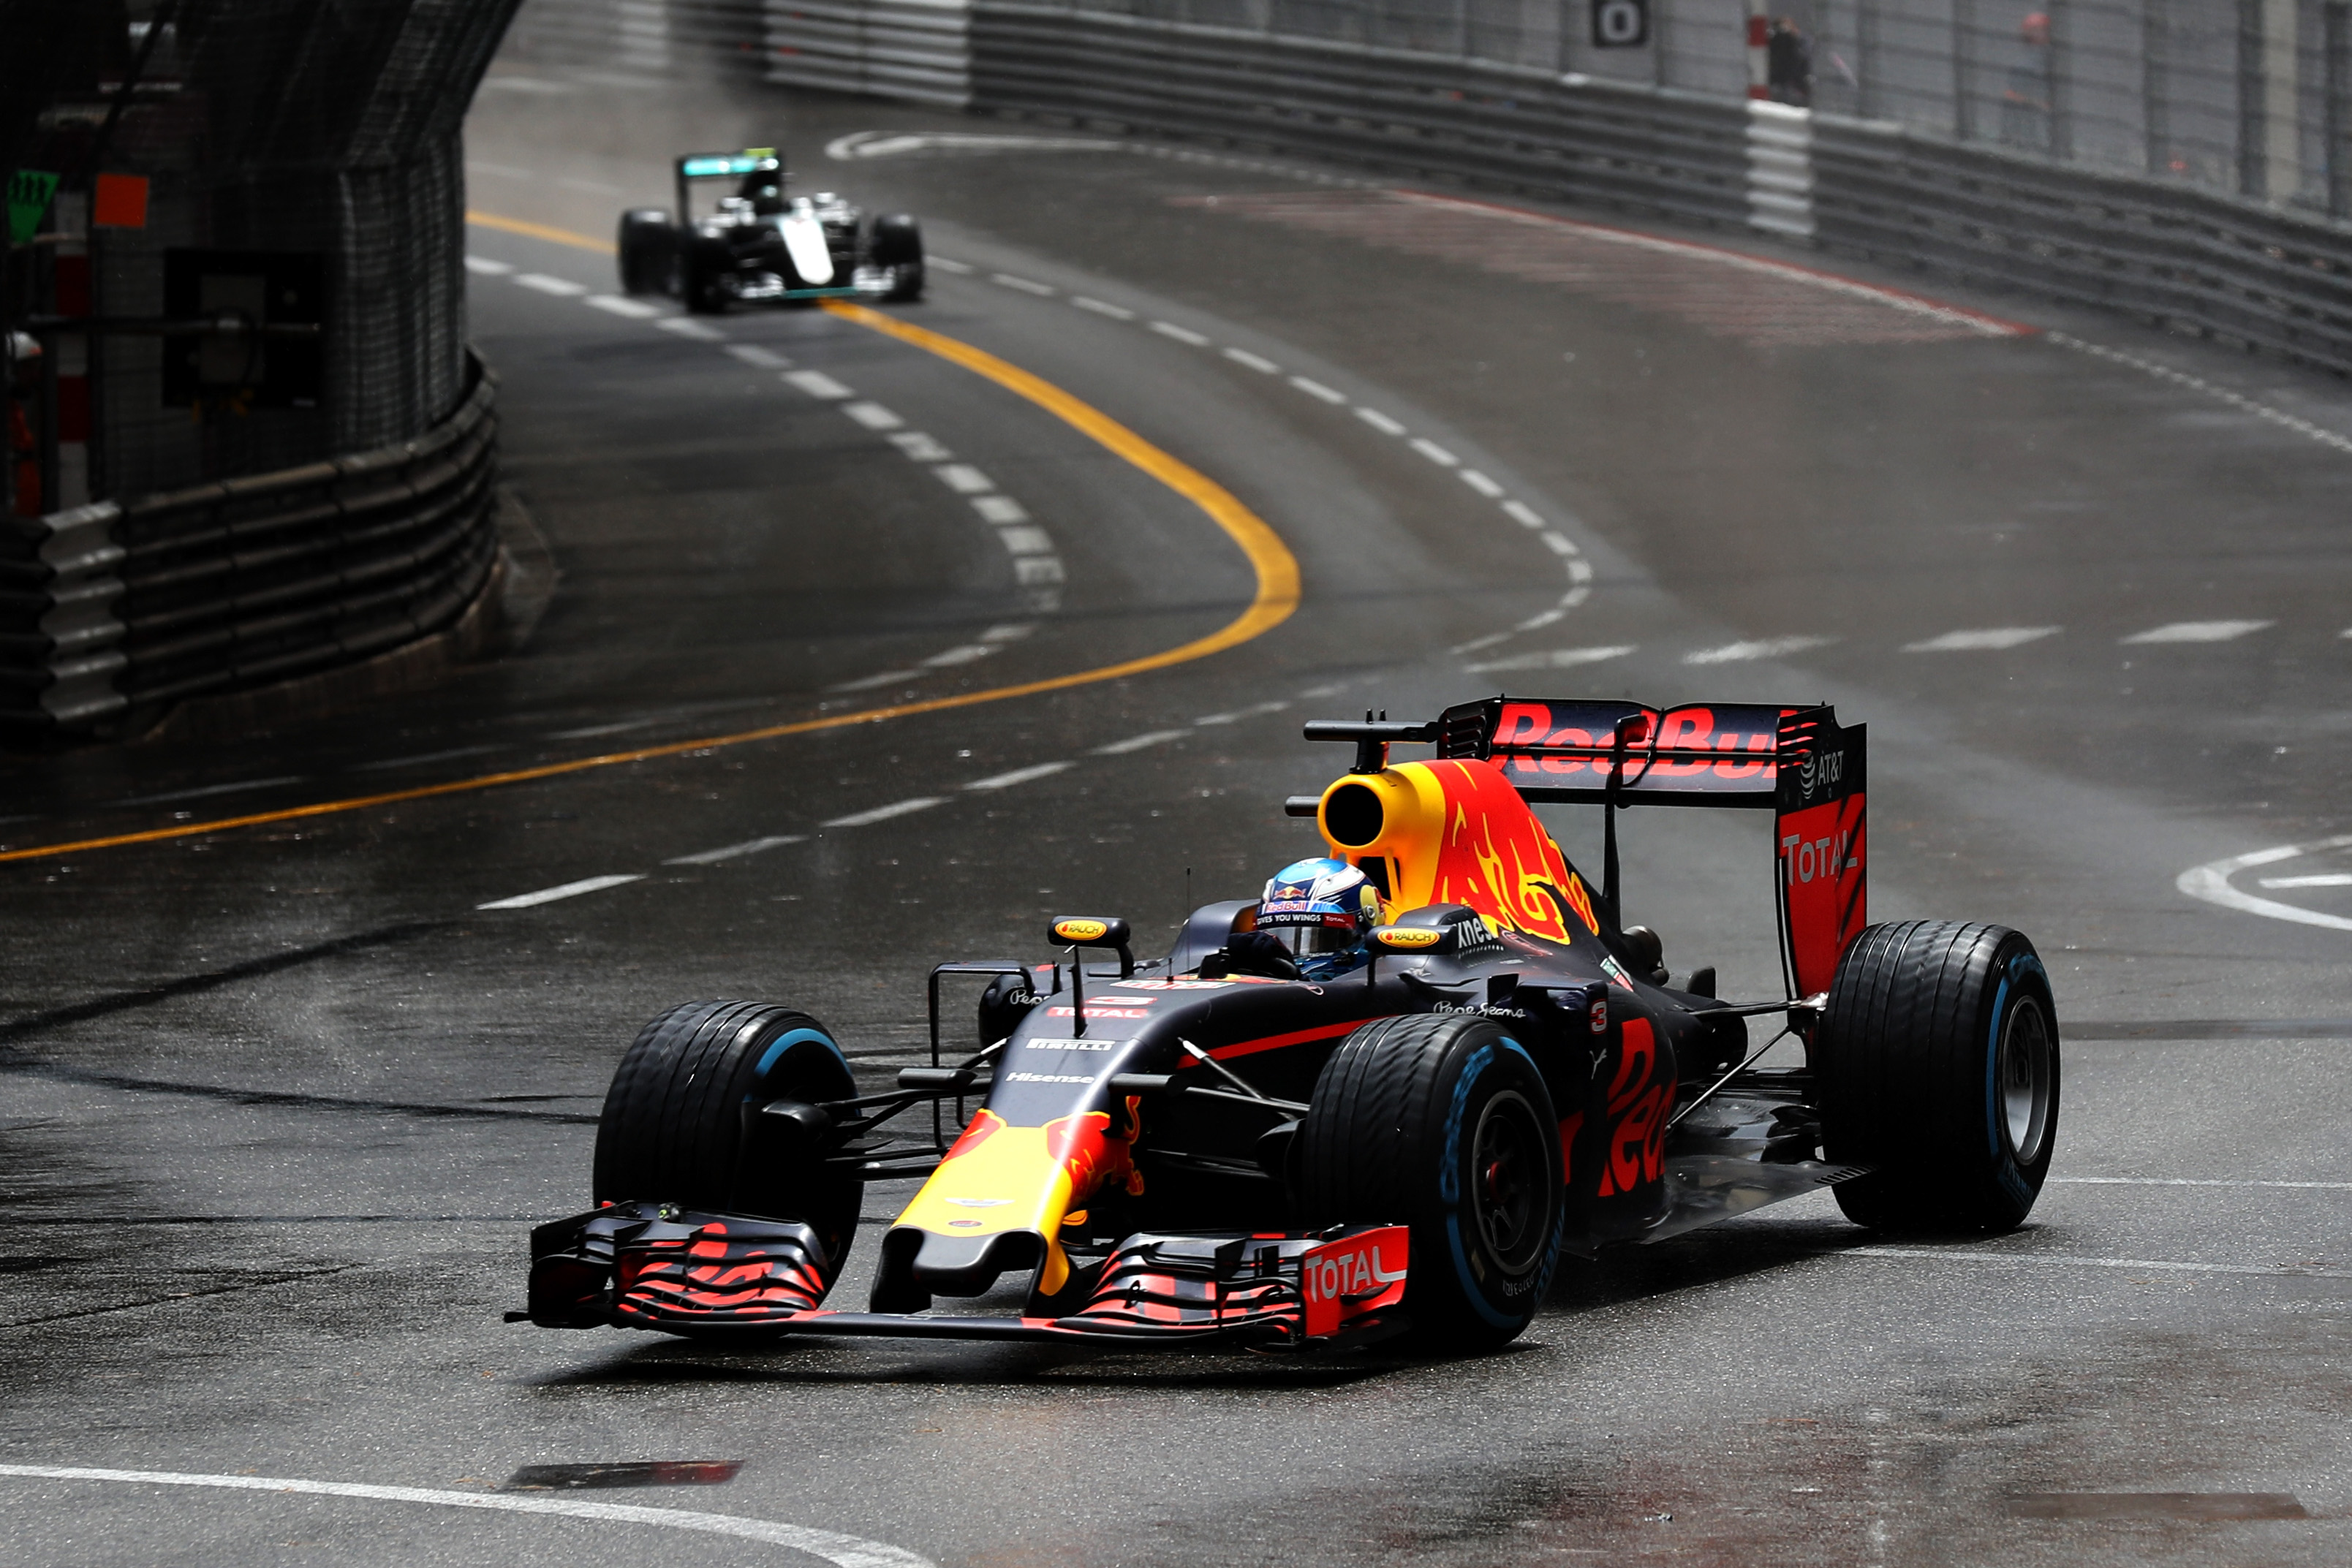 Daniel Ricciardo well in front of Lewis Hamilton in the Monaco Grand Prix. Picture: Mark Thompson/Getty Images